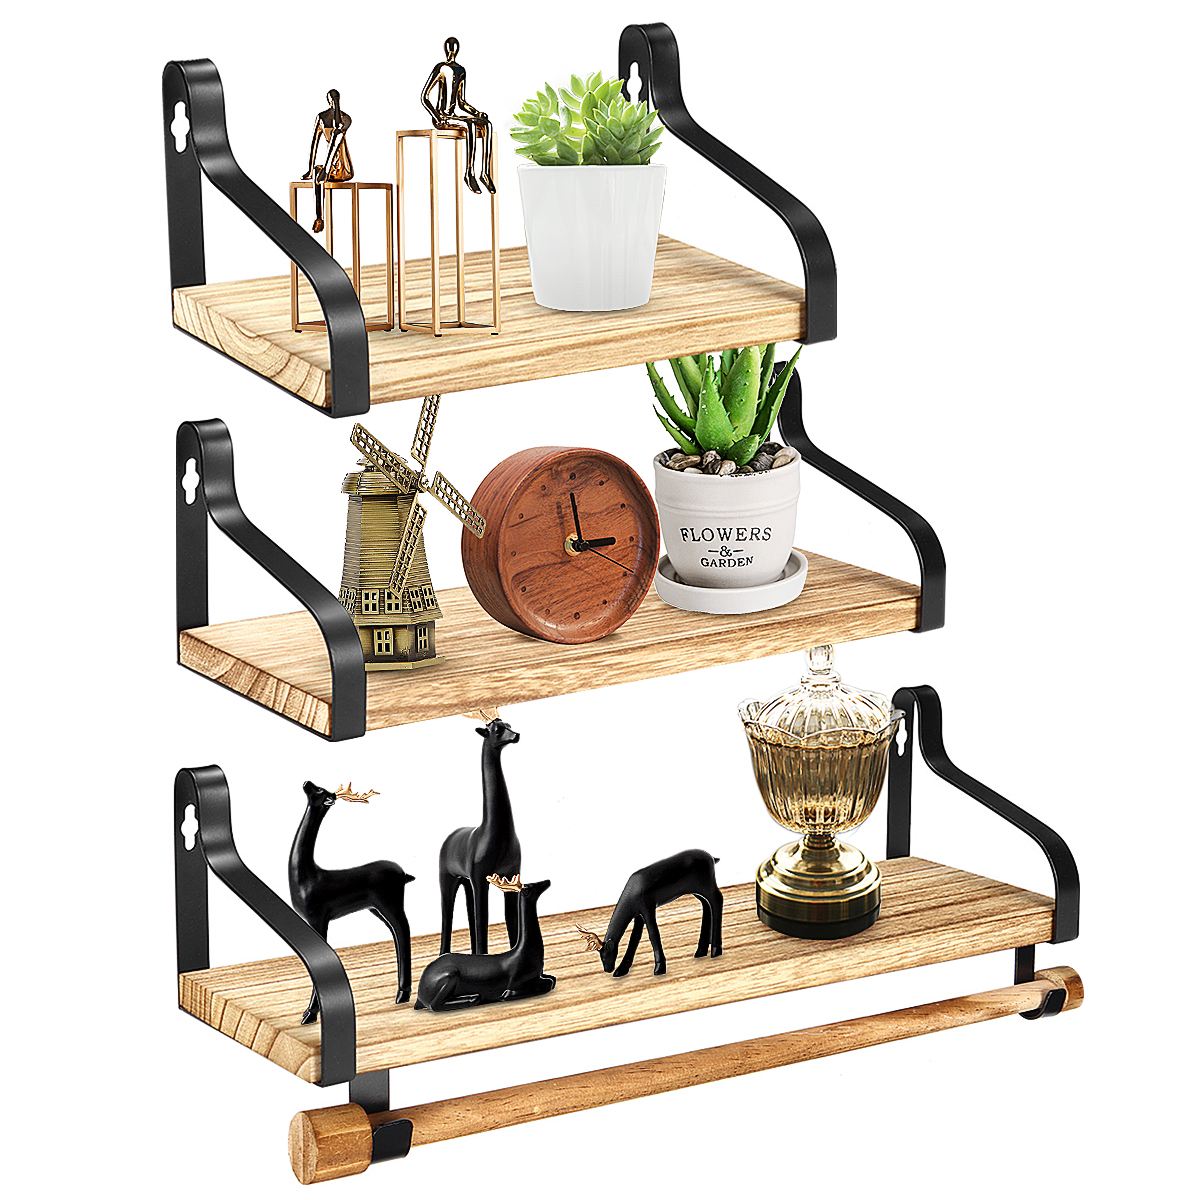 Floating Shelves Wall Mounted Set of 3, Rustic Wood Wall Storage Shelves Spice Rack with Towel Bar, for Bedroom, Living Room, Bathroom, Kitchen, Office - Walmart.com